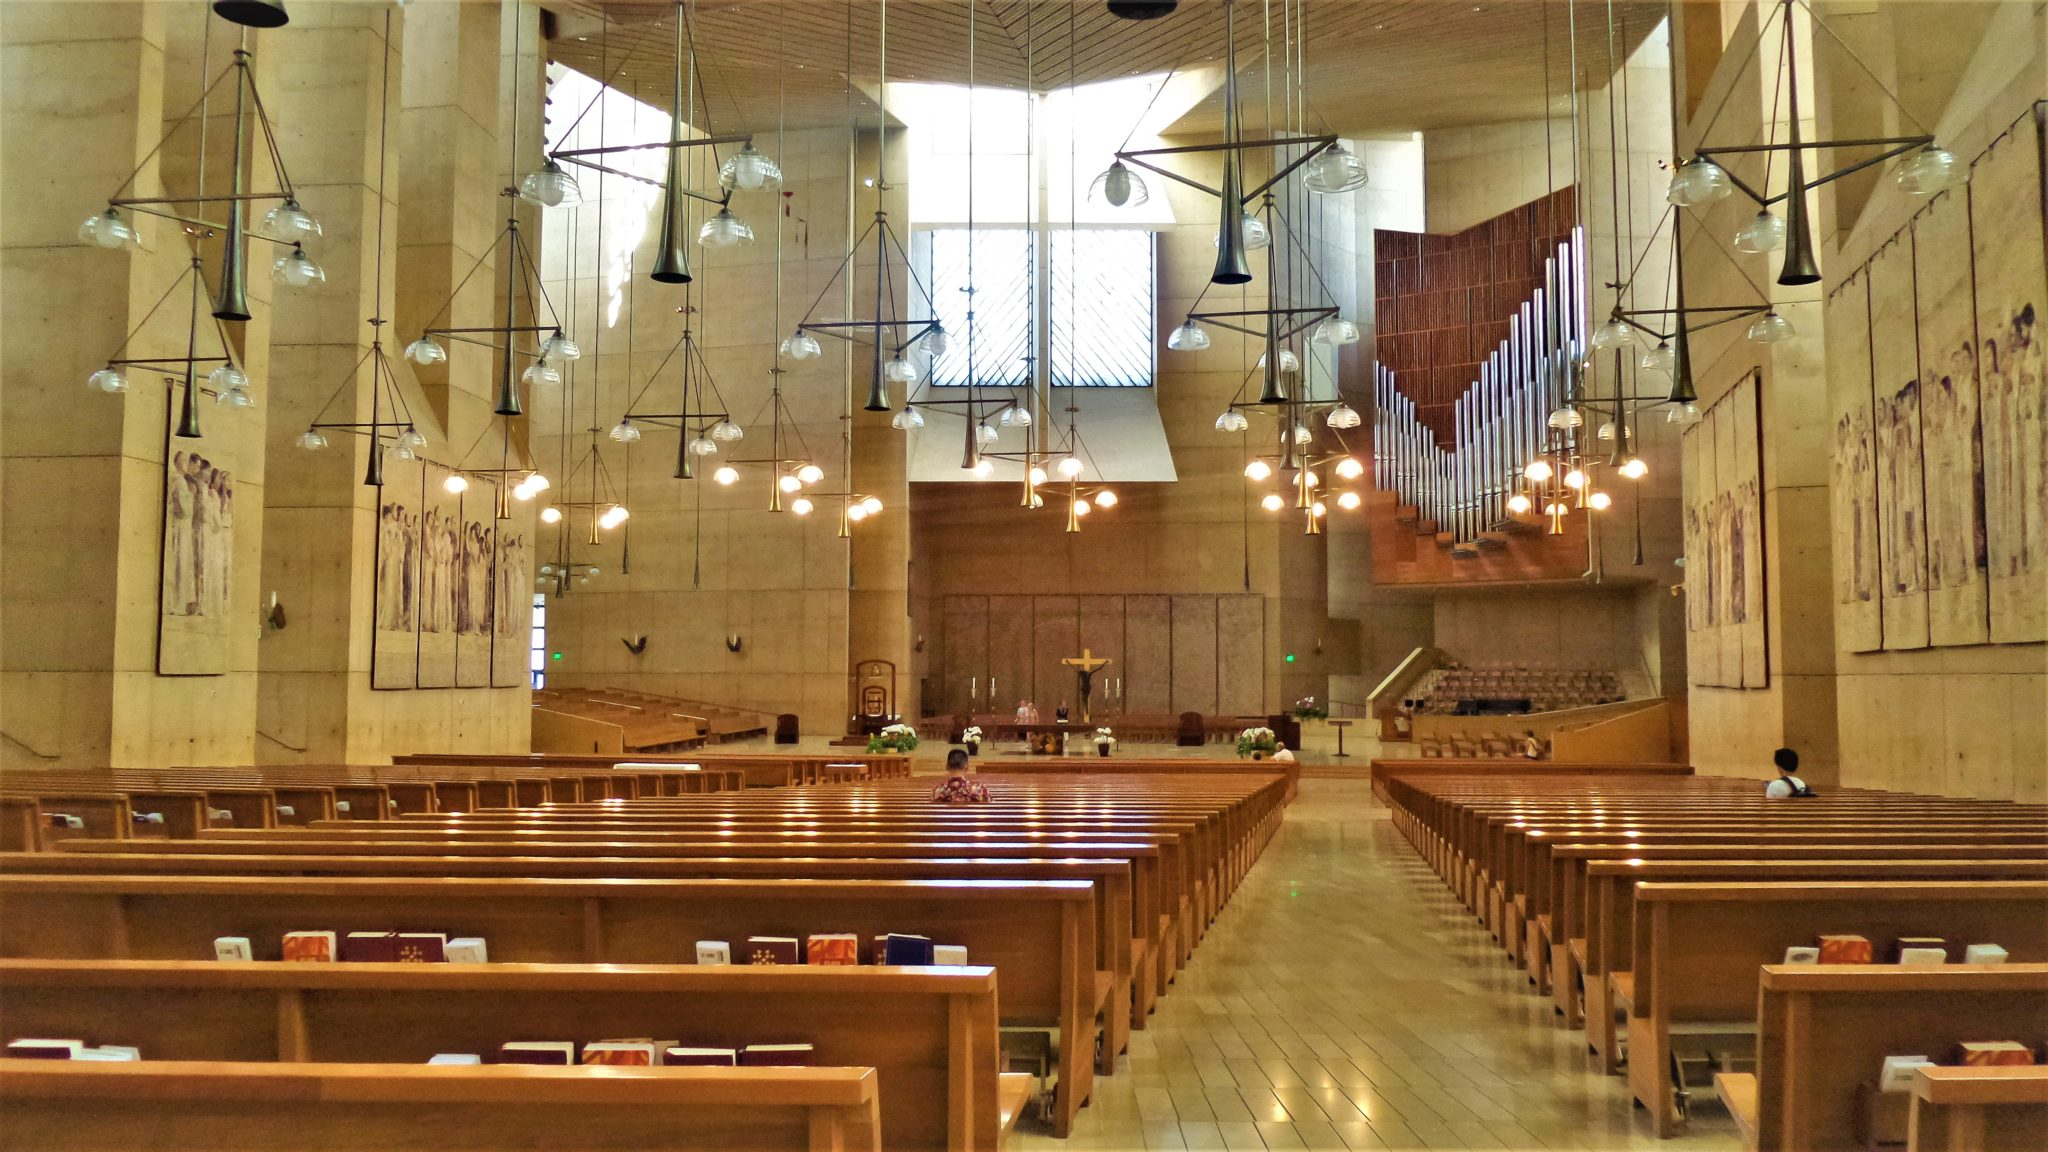 Cathedral of Our Lady of the Angels, things to do in los angeles